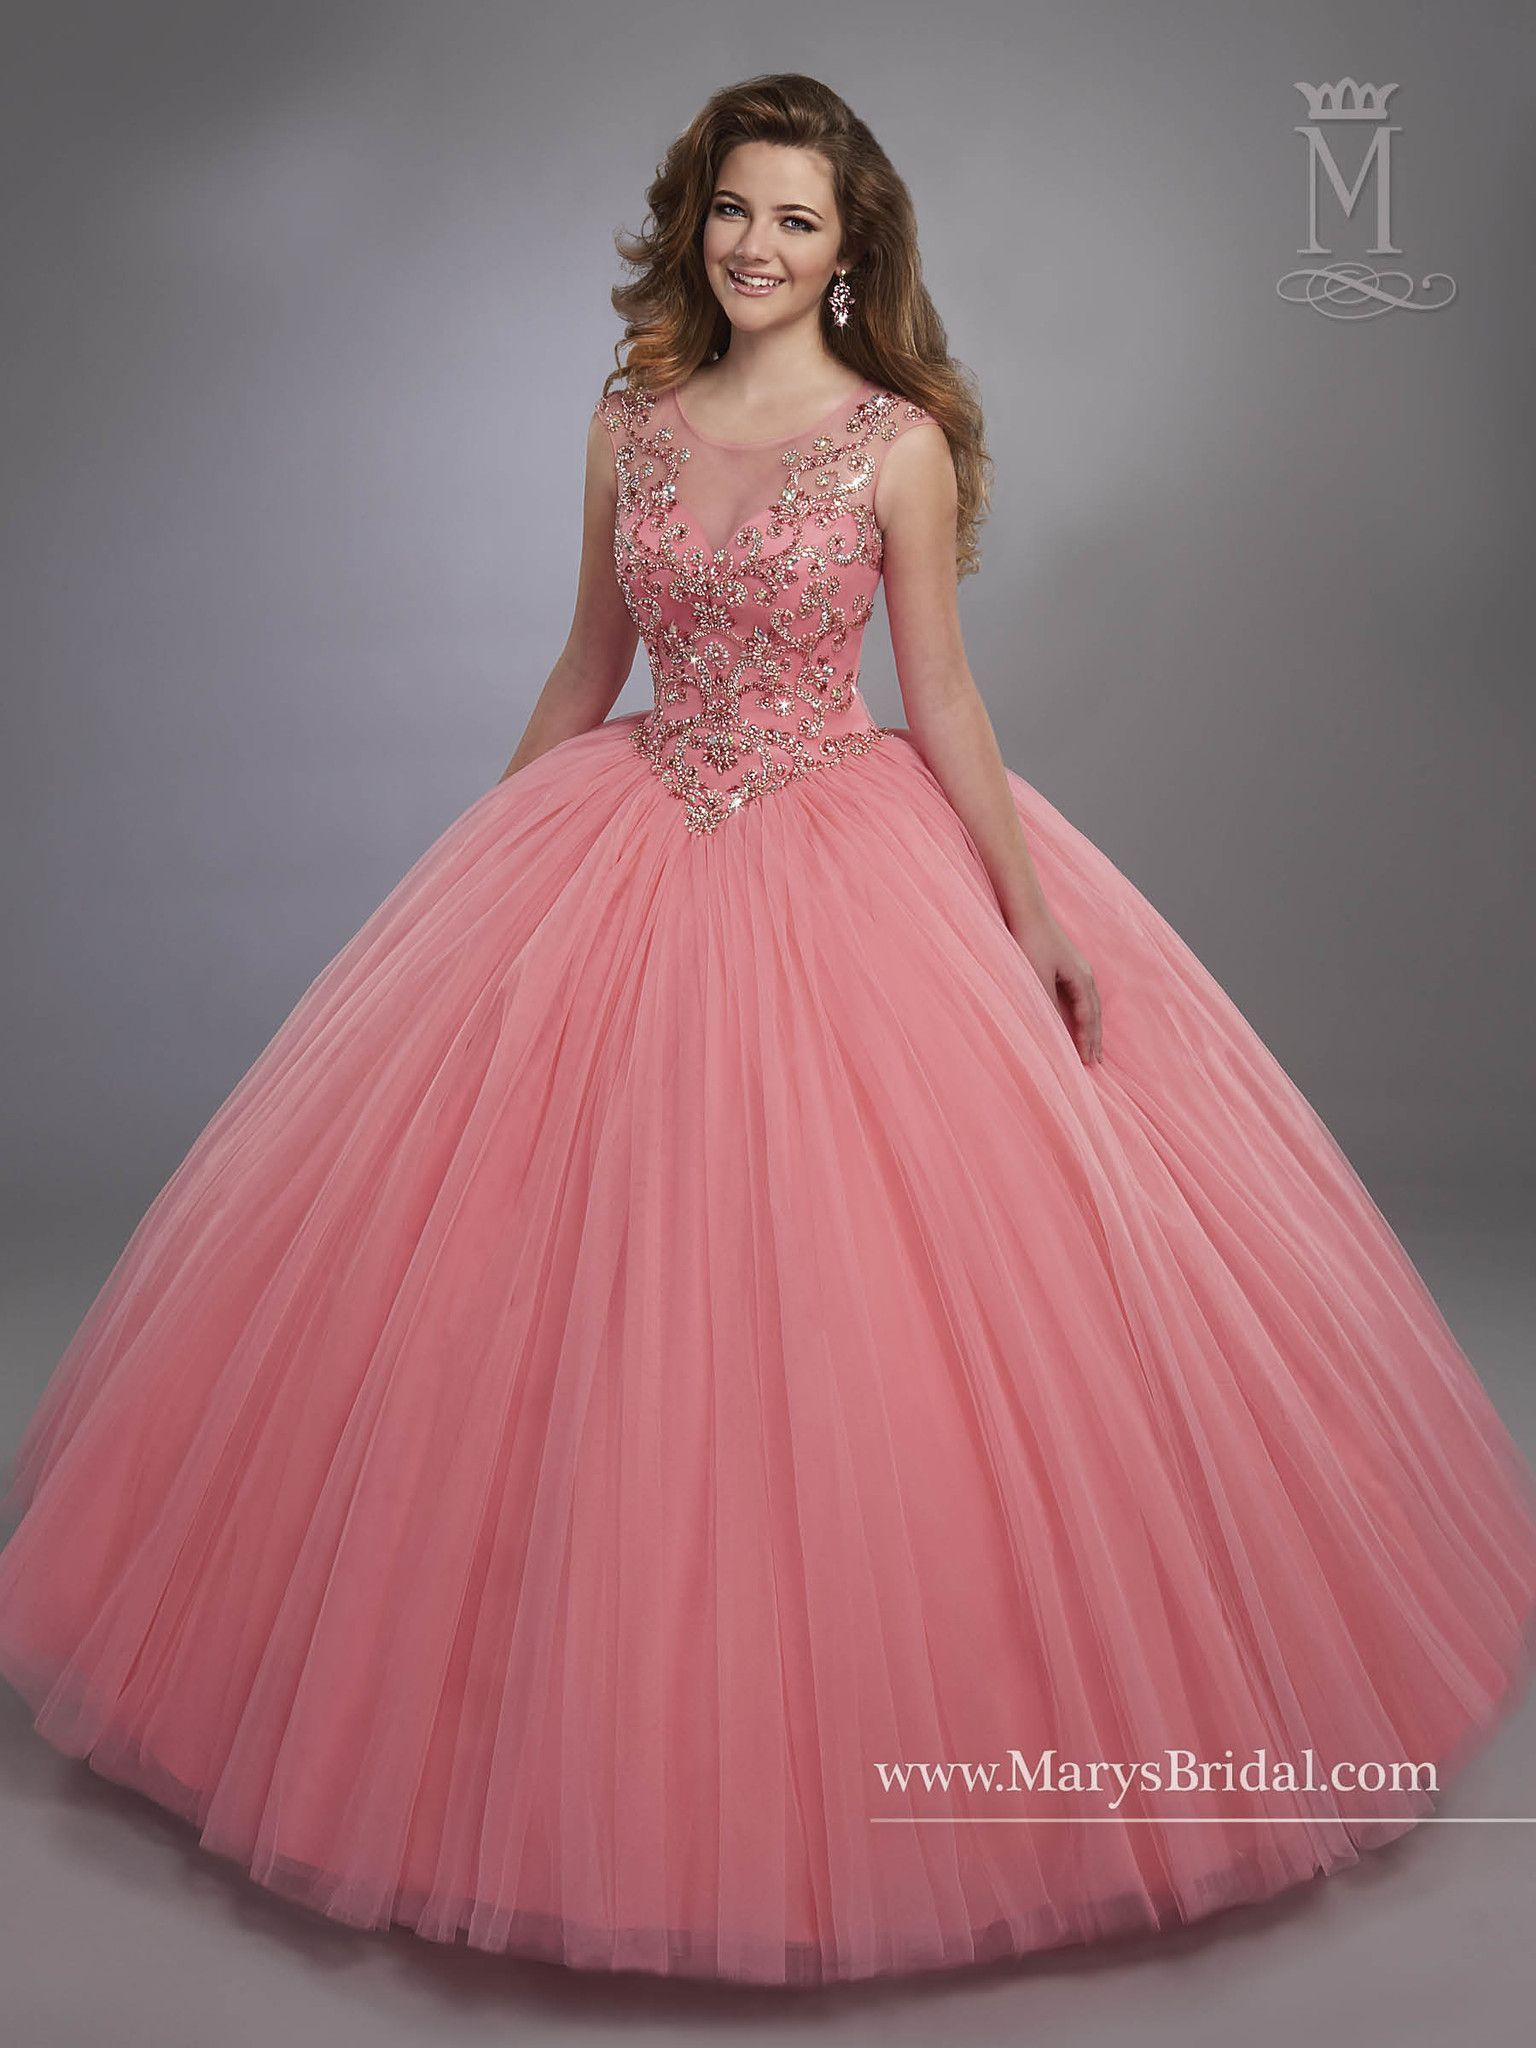 Mary\'s Bridal Beloving Collection Quinceanera Dress Style 4762 ...